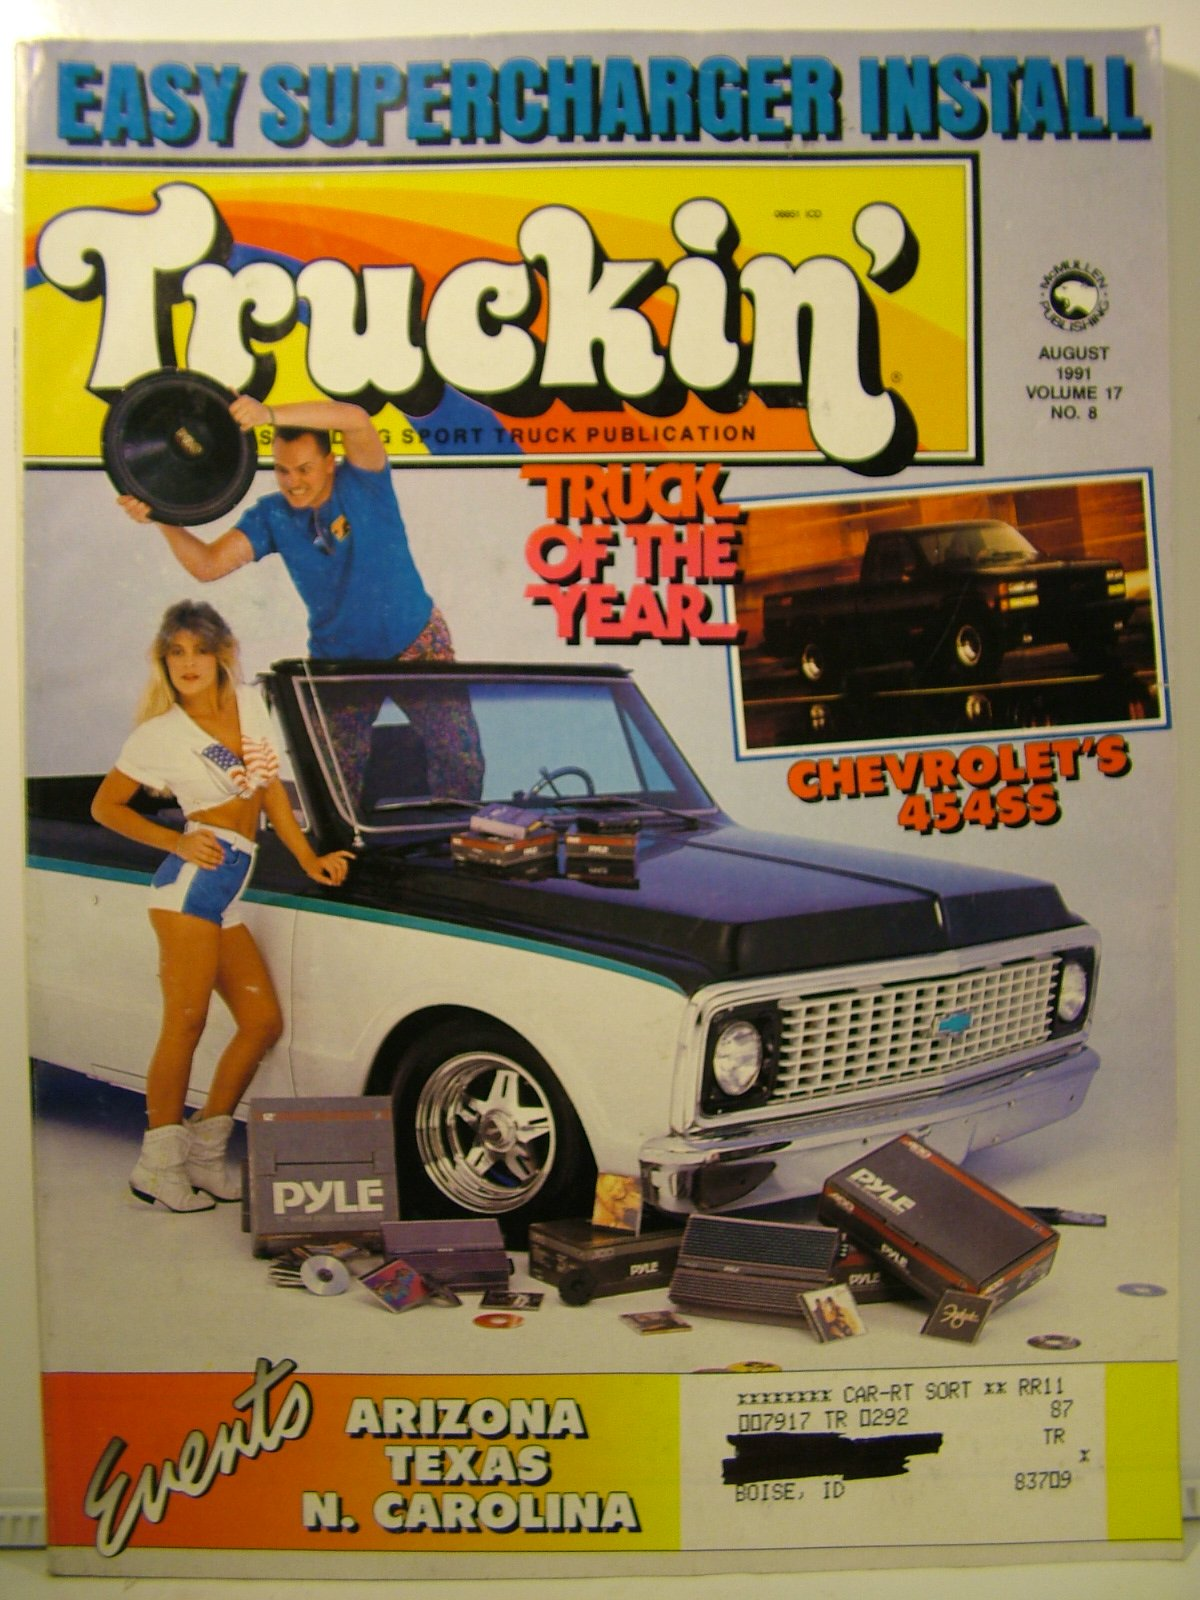 Truckin' Magazine August 1991 Easy Supercharger Install